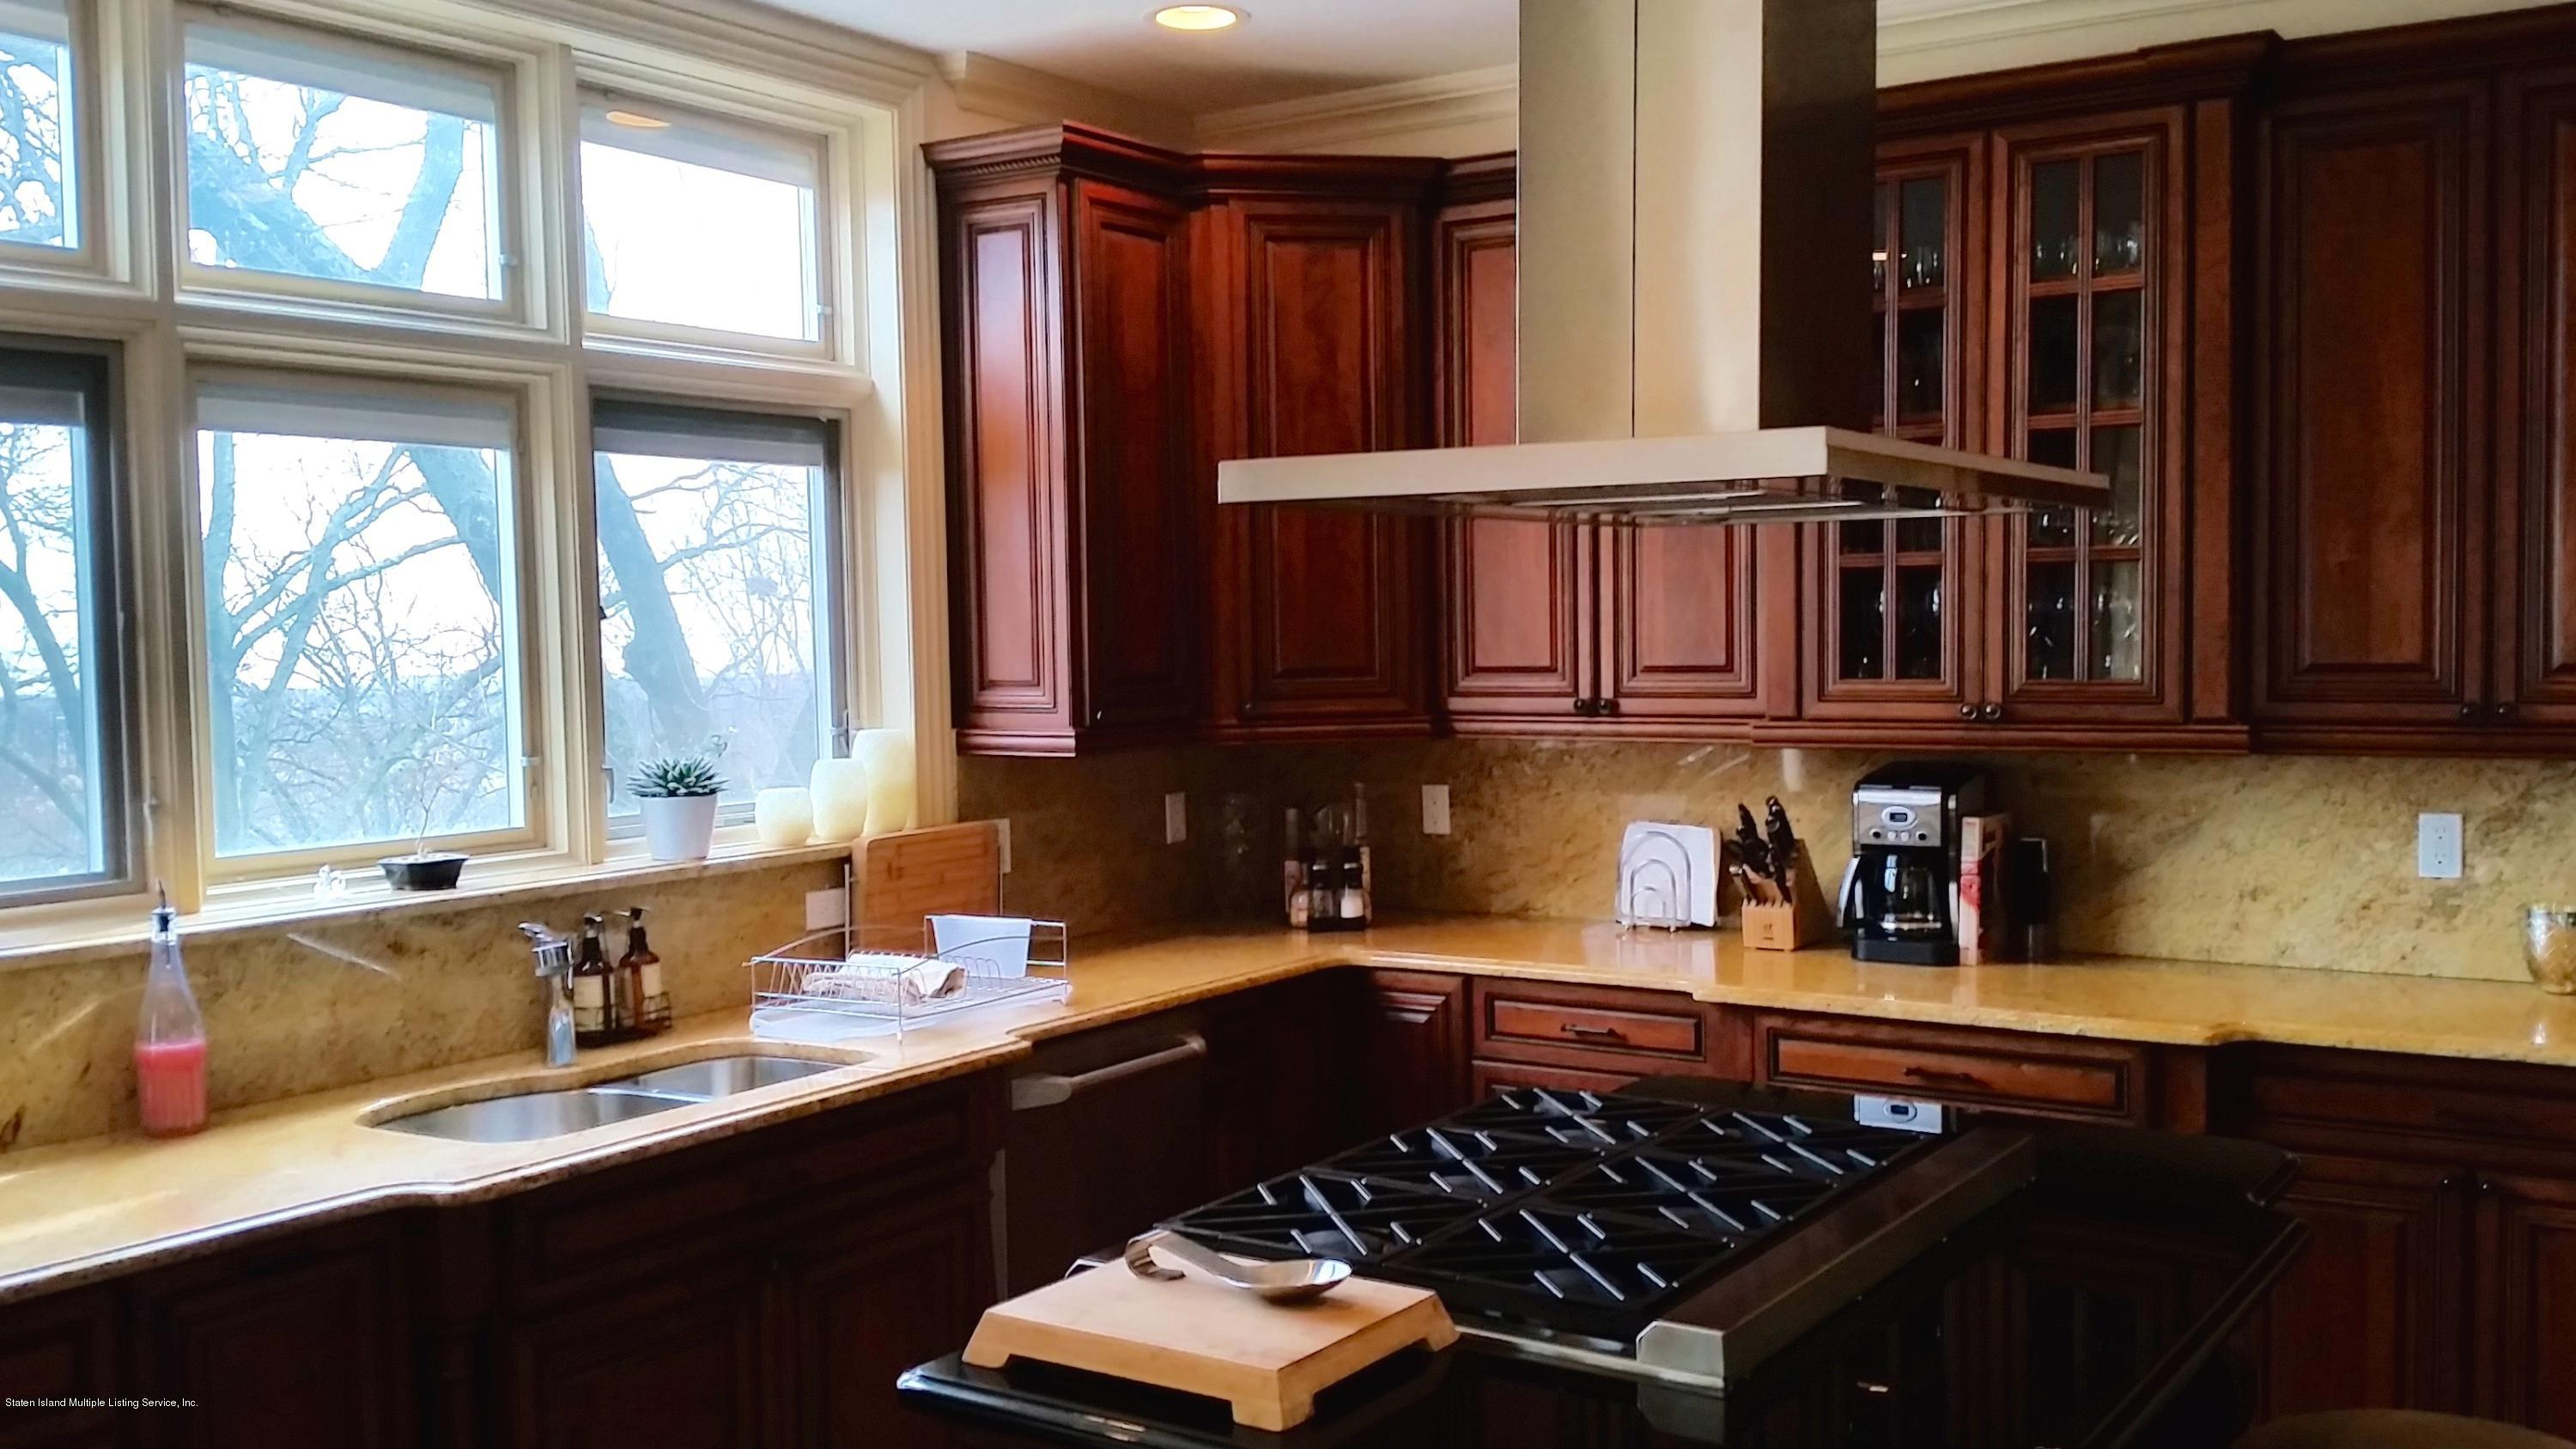 Single Family - Detached 1 Seven Gables Road  Staten Island, NY 10304, MLS-1101578-5